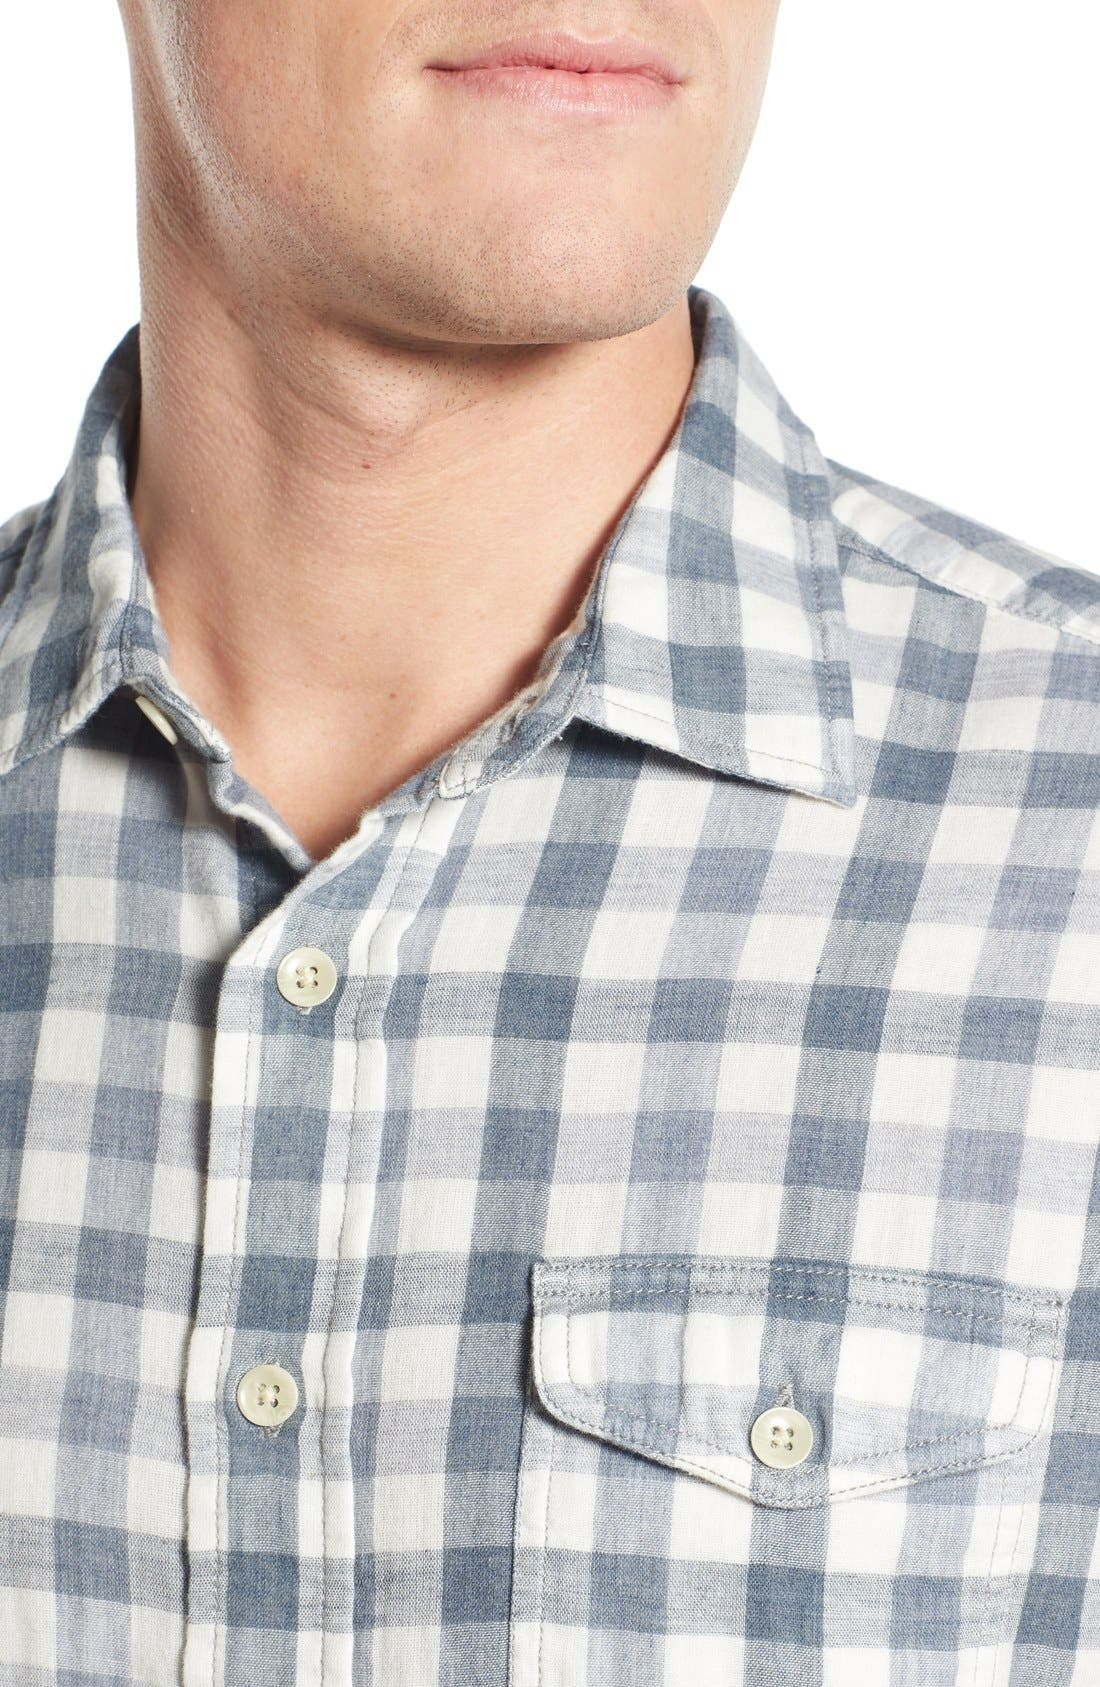 'Denby' Trim Fit Double Woven Sport Shirt,                             Alternate thumbnail 4, color,                             Heather Blue/ Cream Gingham